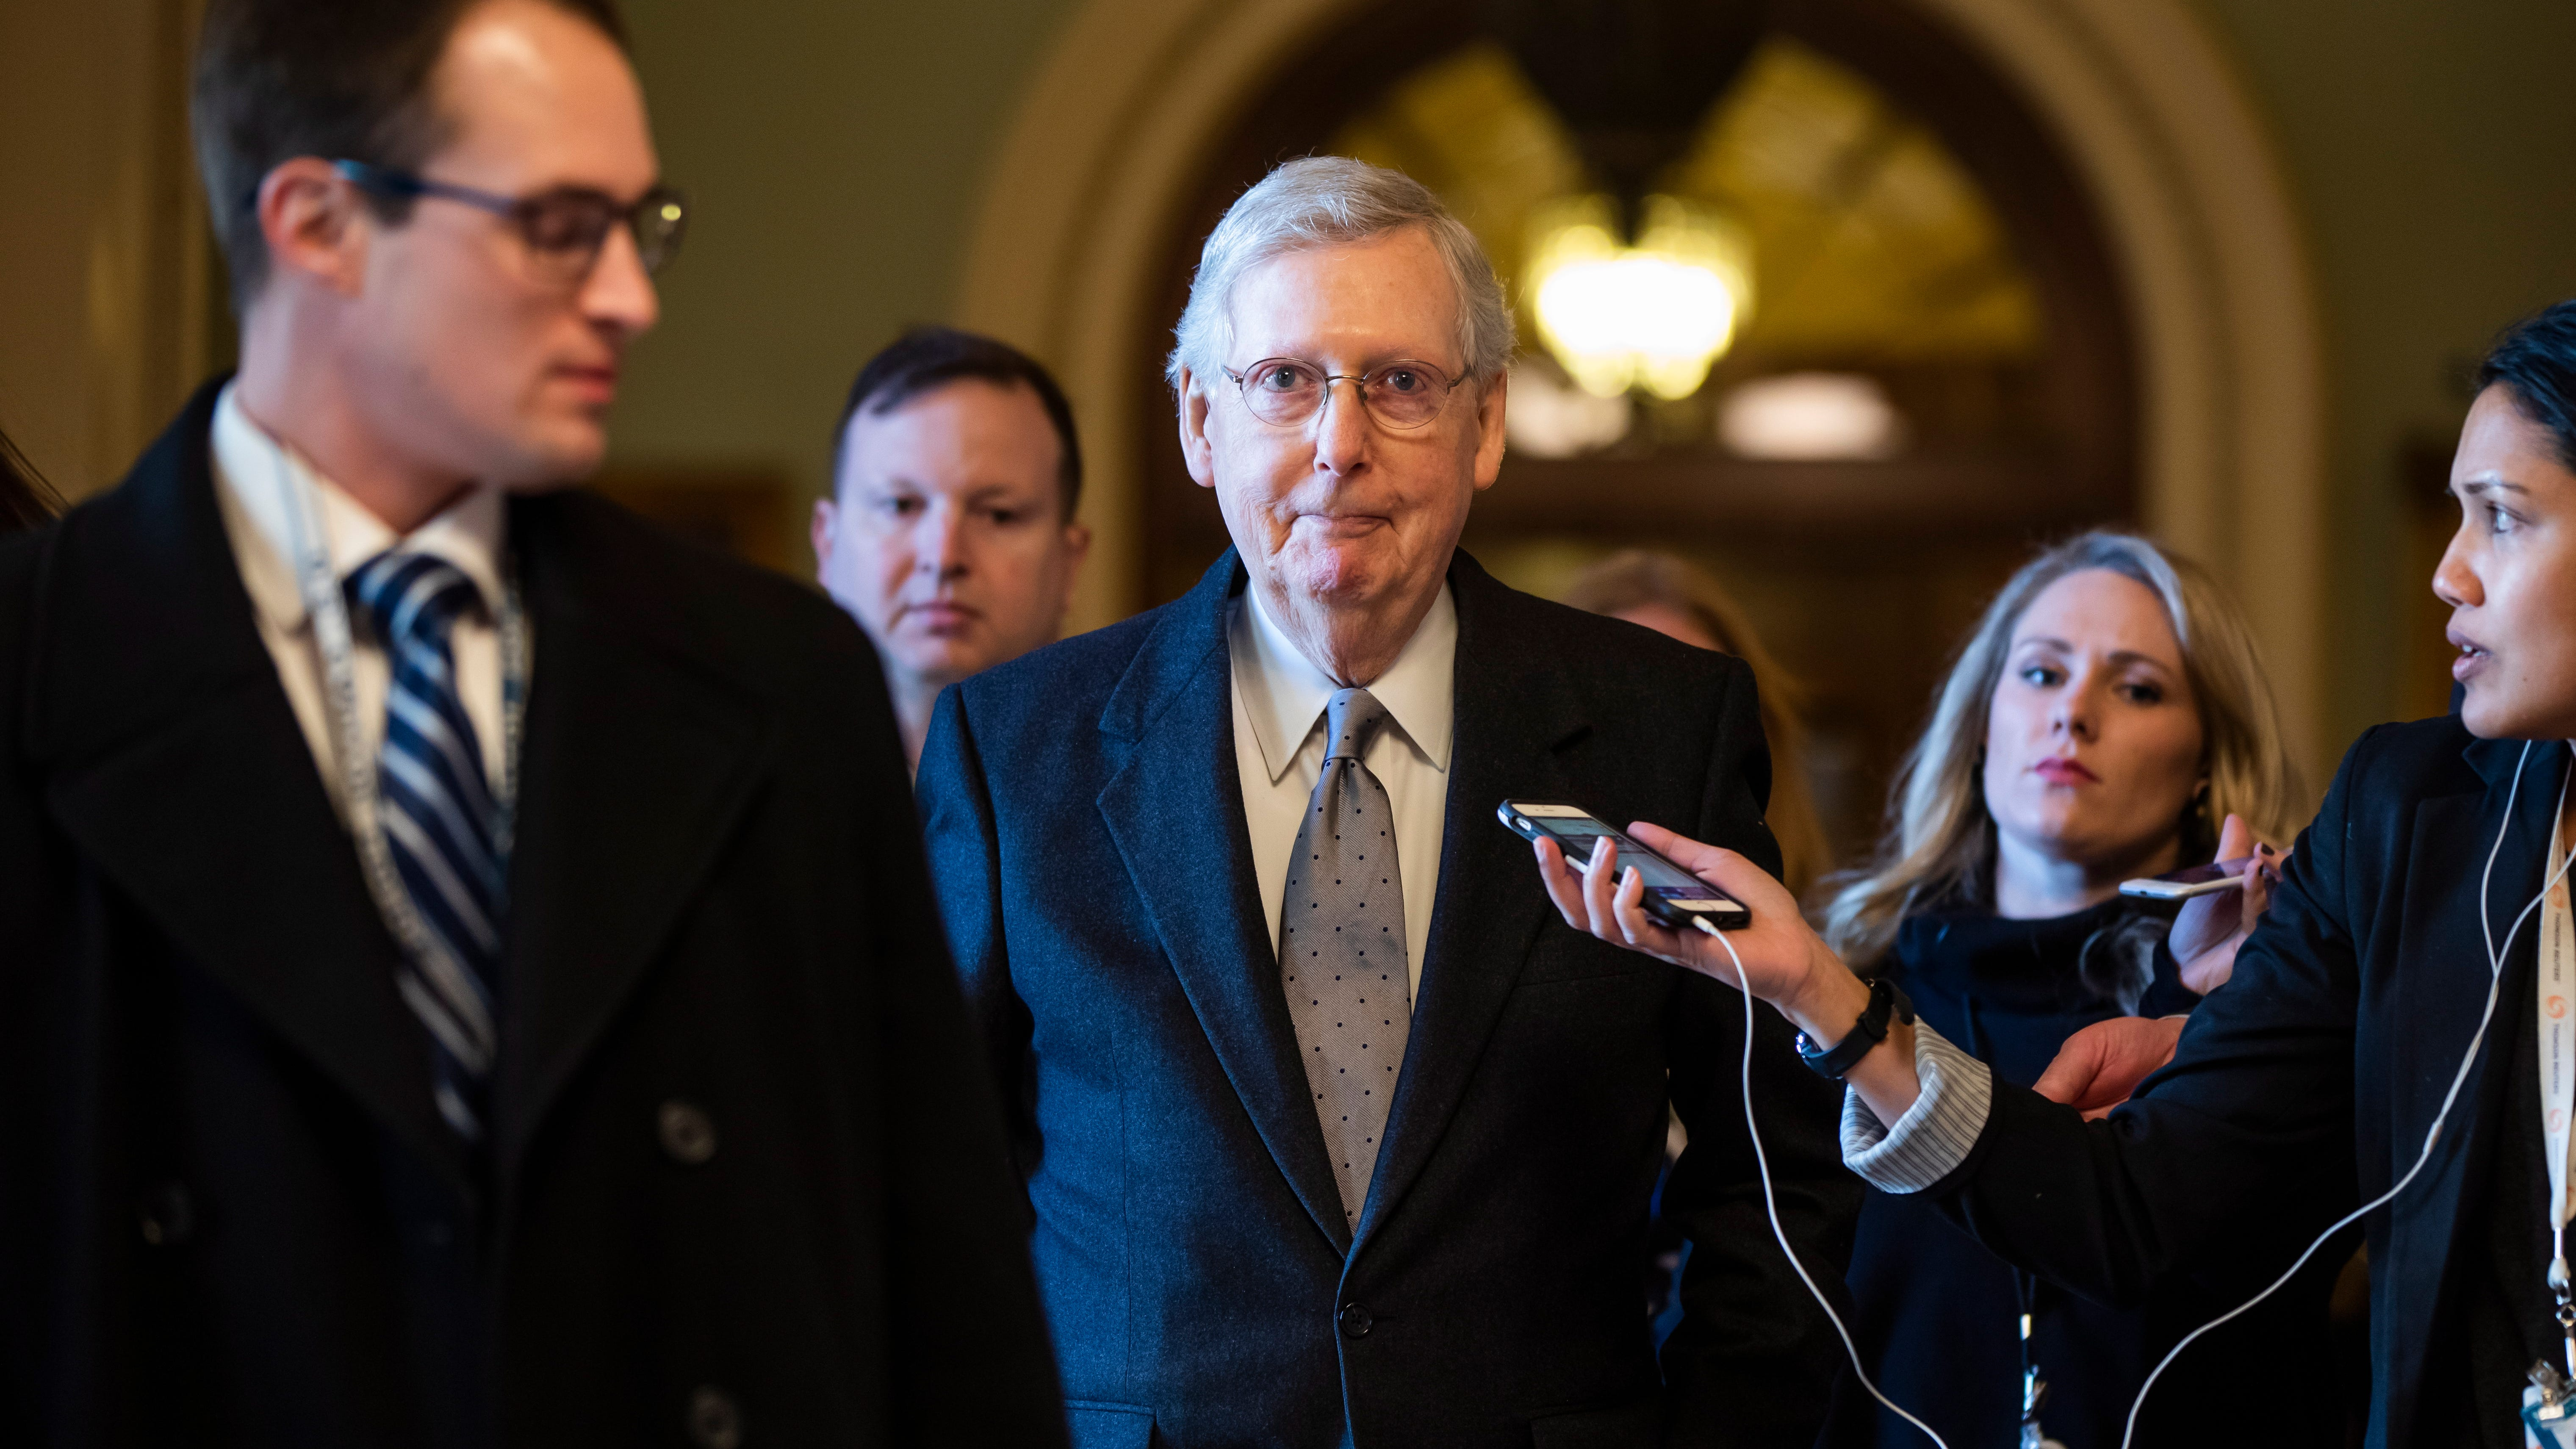 Republican Senate Majority Leader Mitch McConnell walks off the Senate floor as he prepares to enter a bill to end the government shutdown in the U.S. Capitol in Washington, D.C., on Jan. 22, 2019.